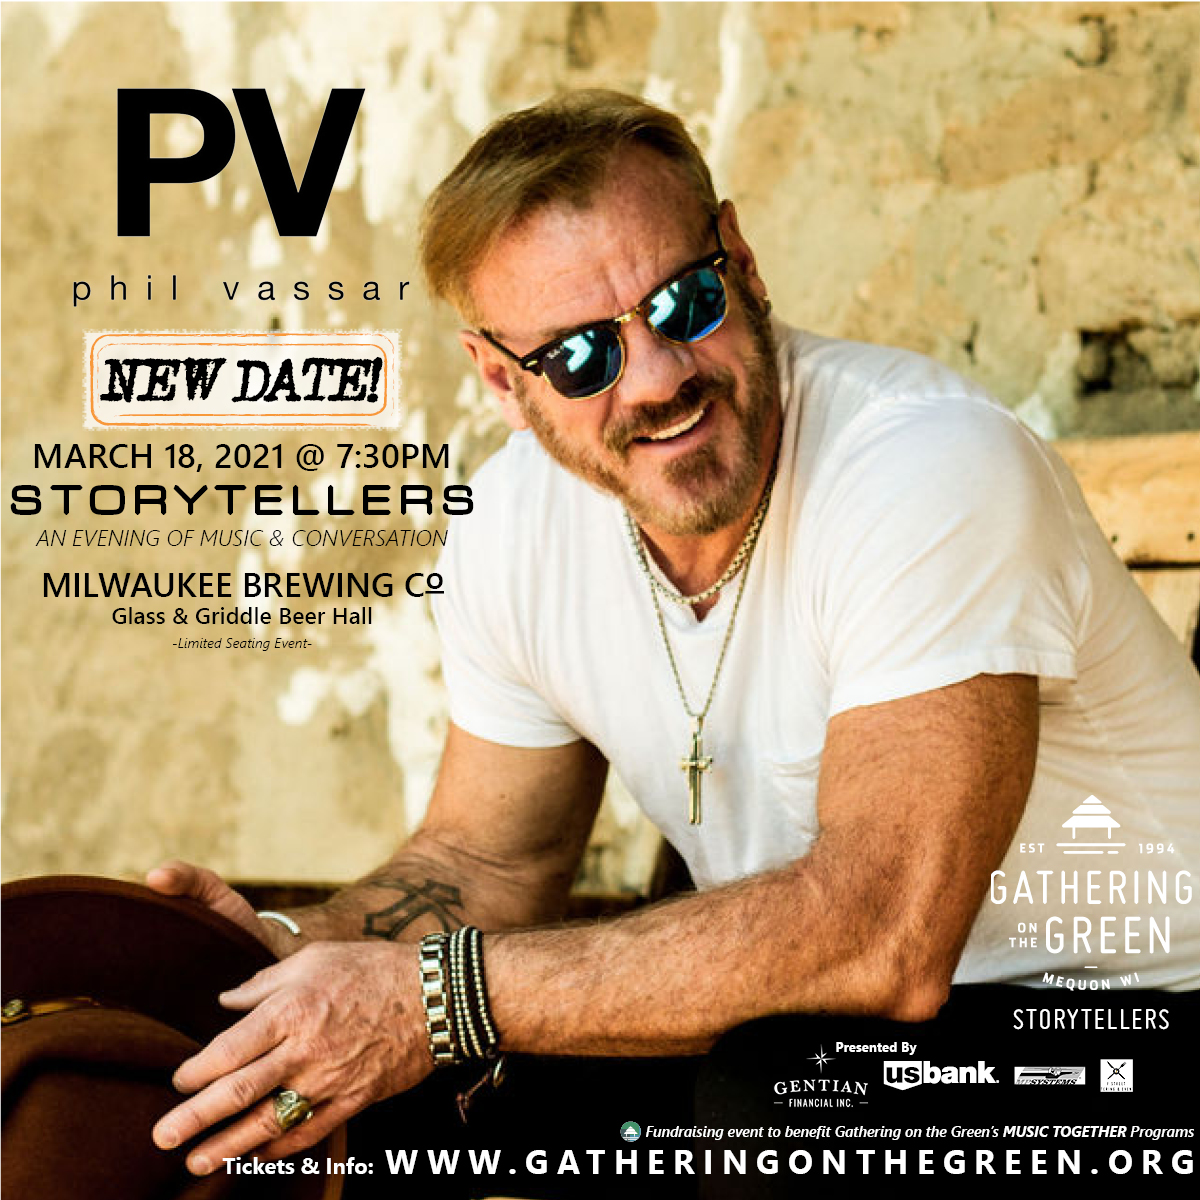 FB_Web_IG_Announce_Phil Vassar_Gathering on the Green_3.18.2021_New Date